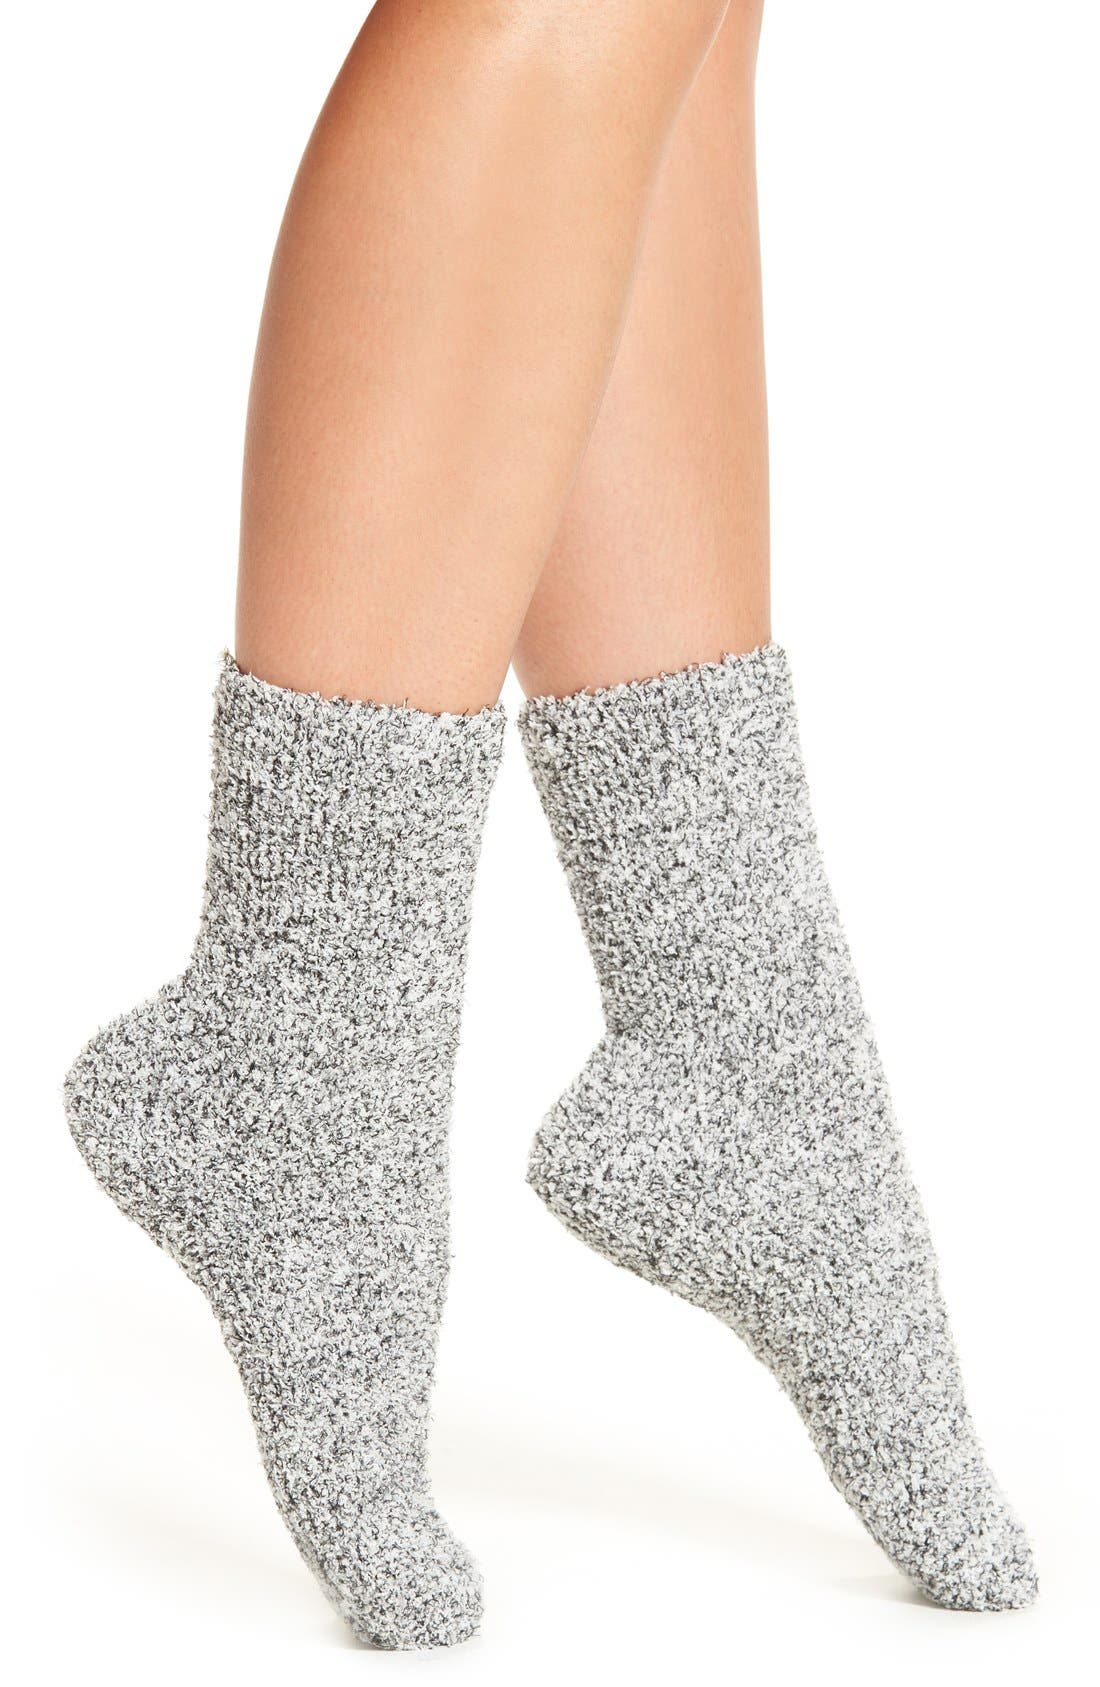 Nordstrom Butter Slipper Socks (3 for $19)